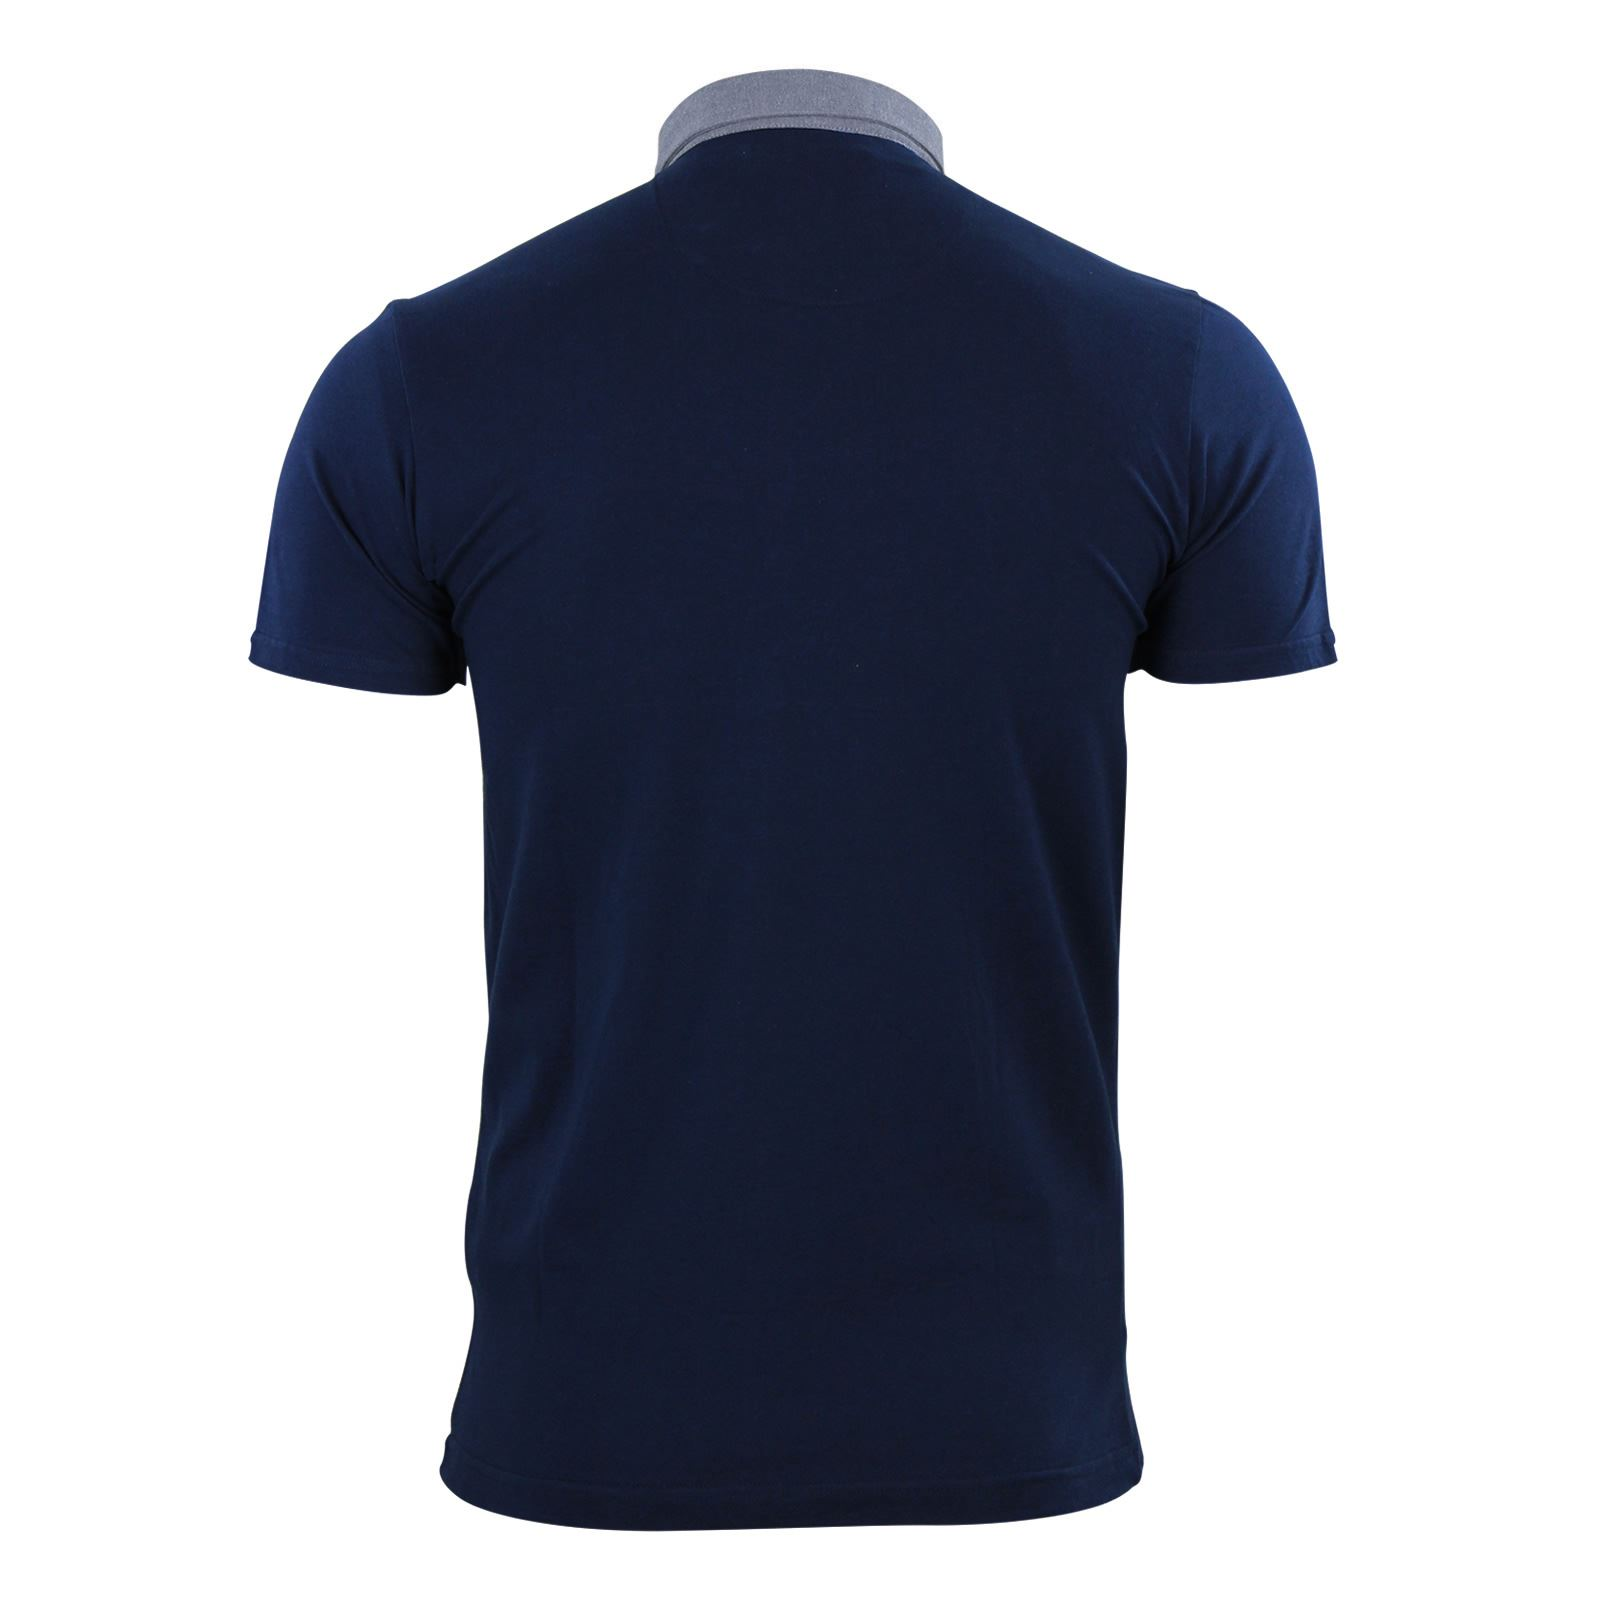 Mens-Polo-T-Shirt-Brave-Soul-Glover-Cotton-Collared-Short-Sleeve-Casual-Top thumbnail 28